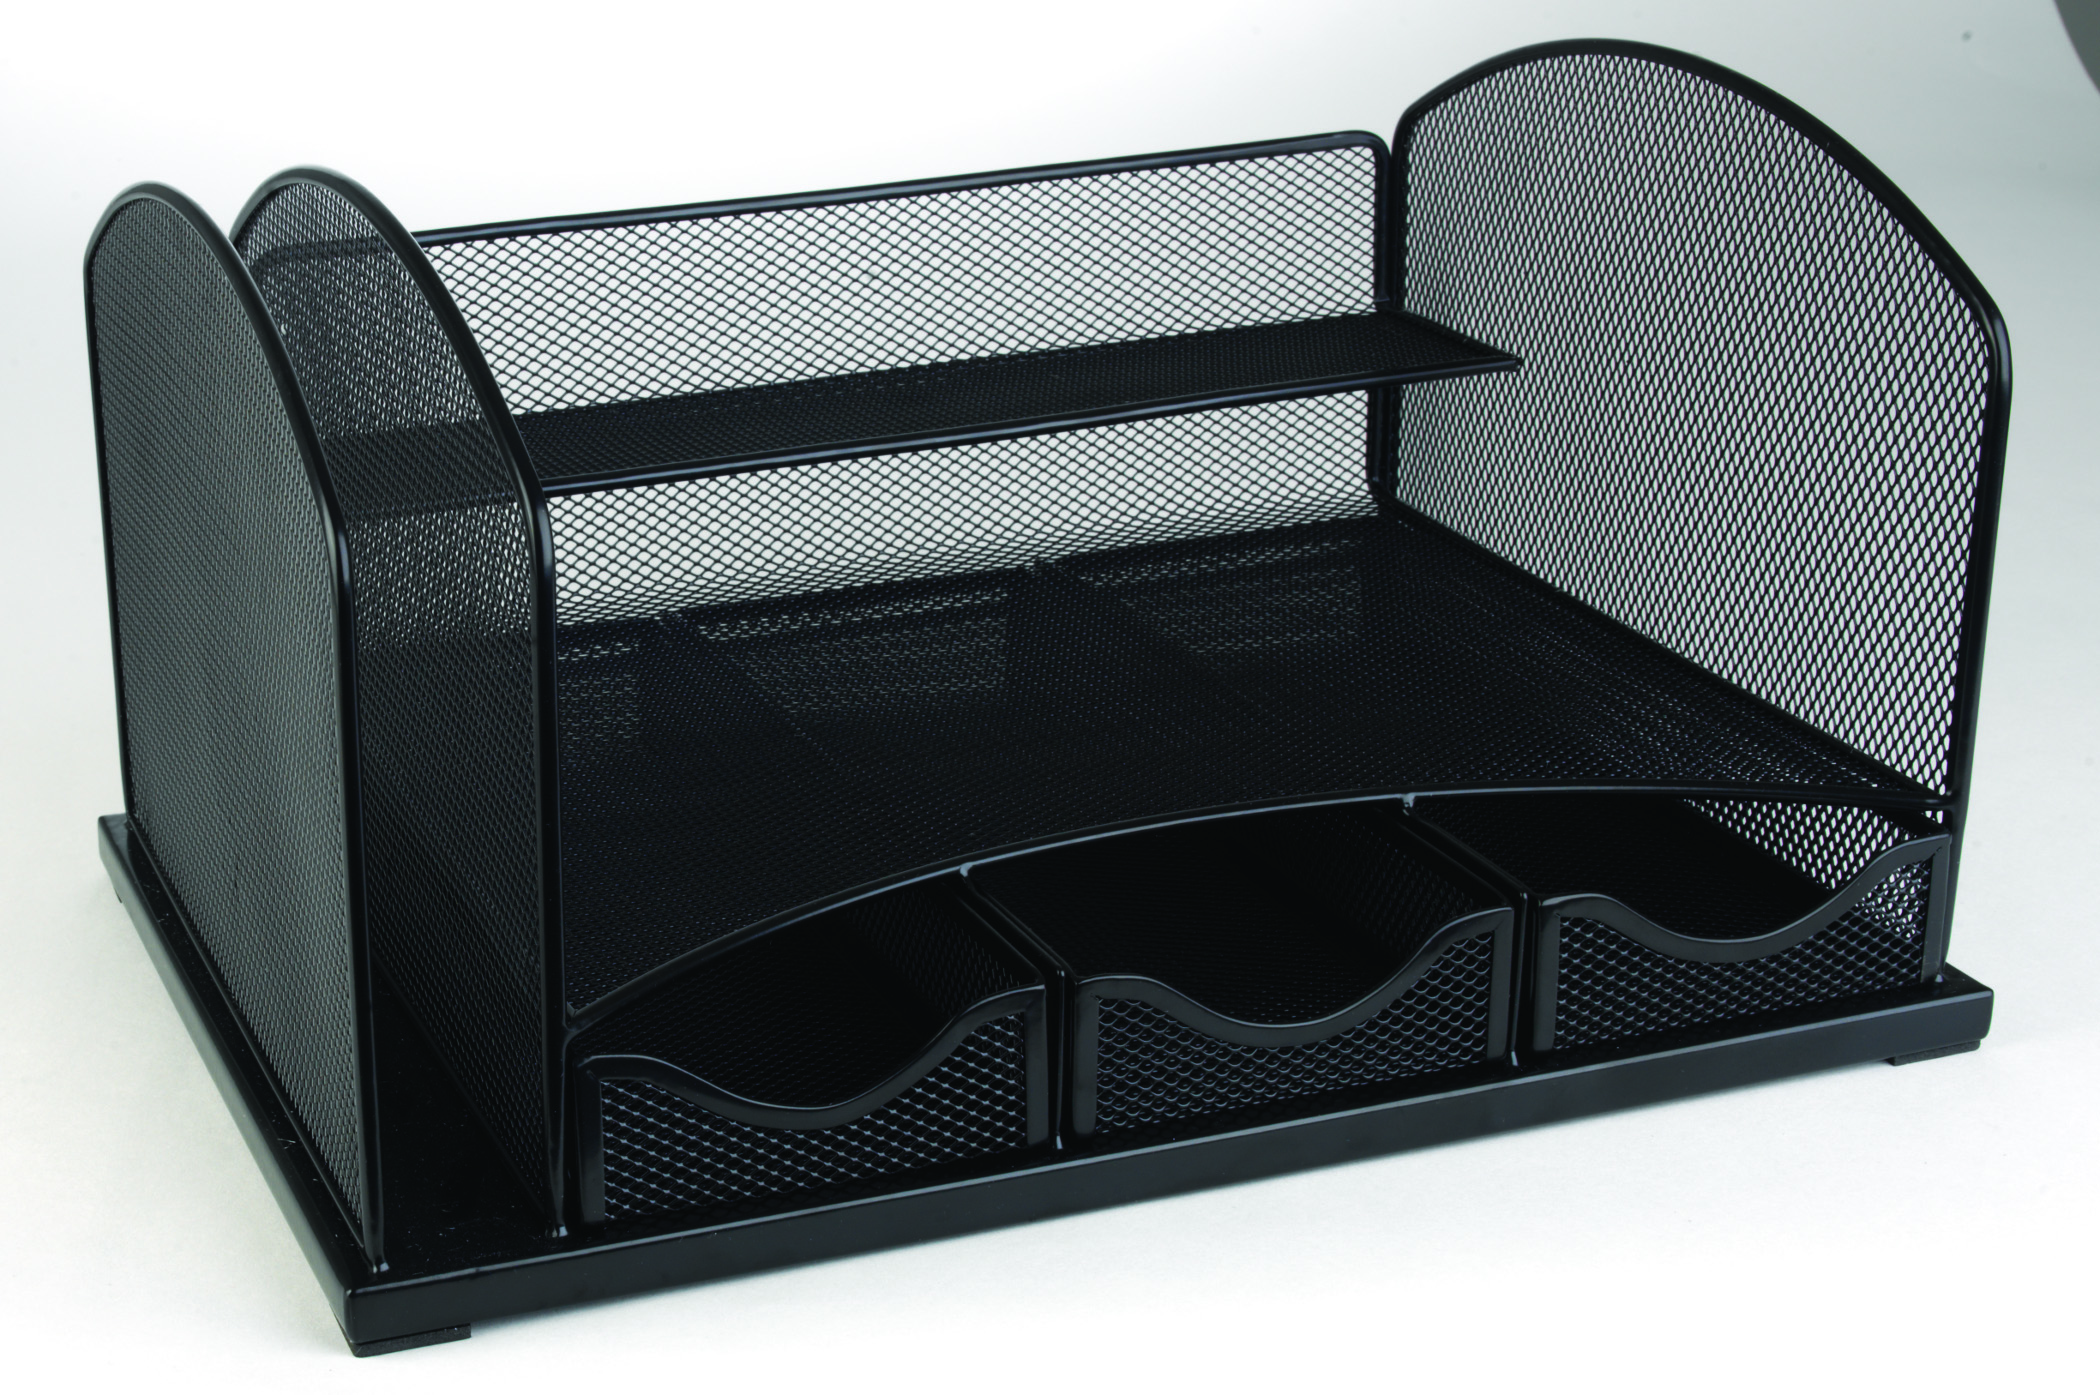 Staples Mesh Metal Desk Organizer With Drawers 8 1 4 Quot H X